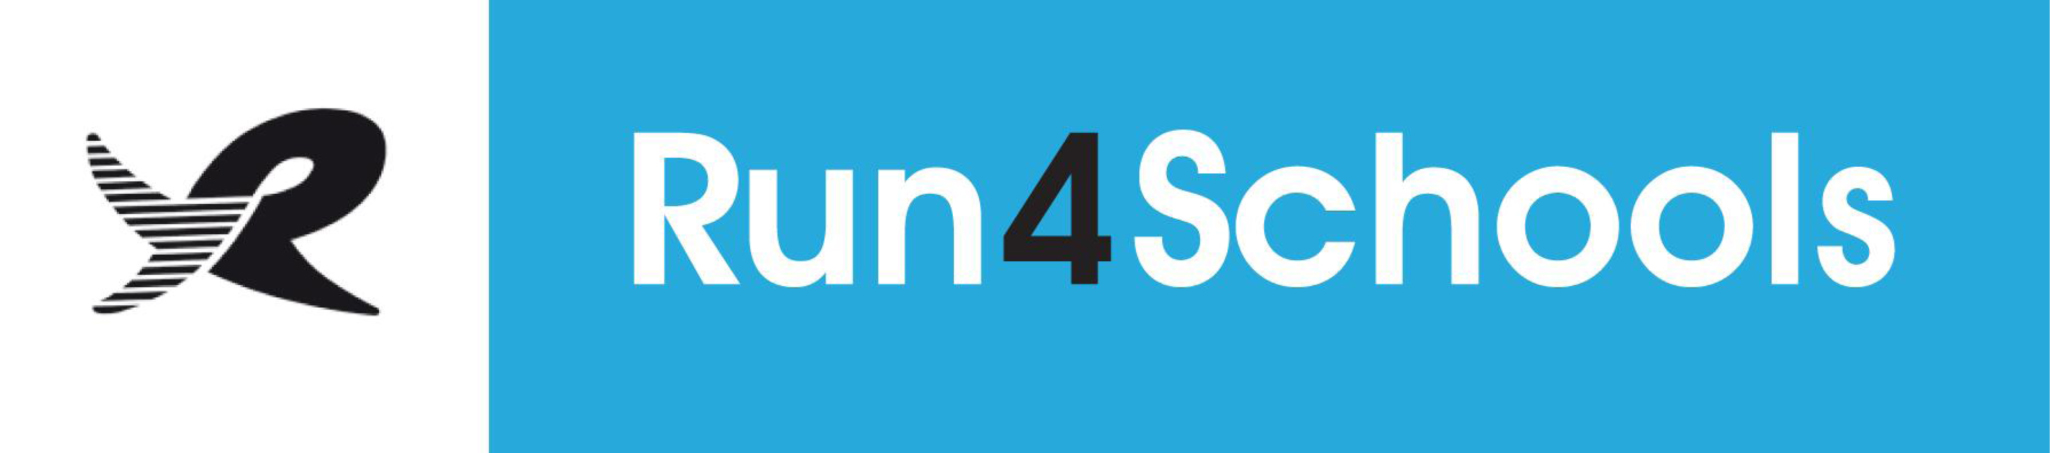 Run4Schools is sponsor van de MeentRun